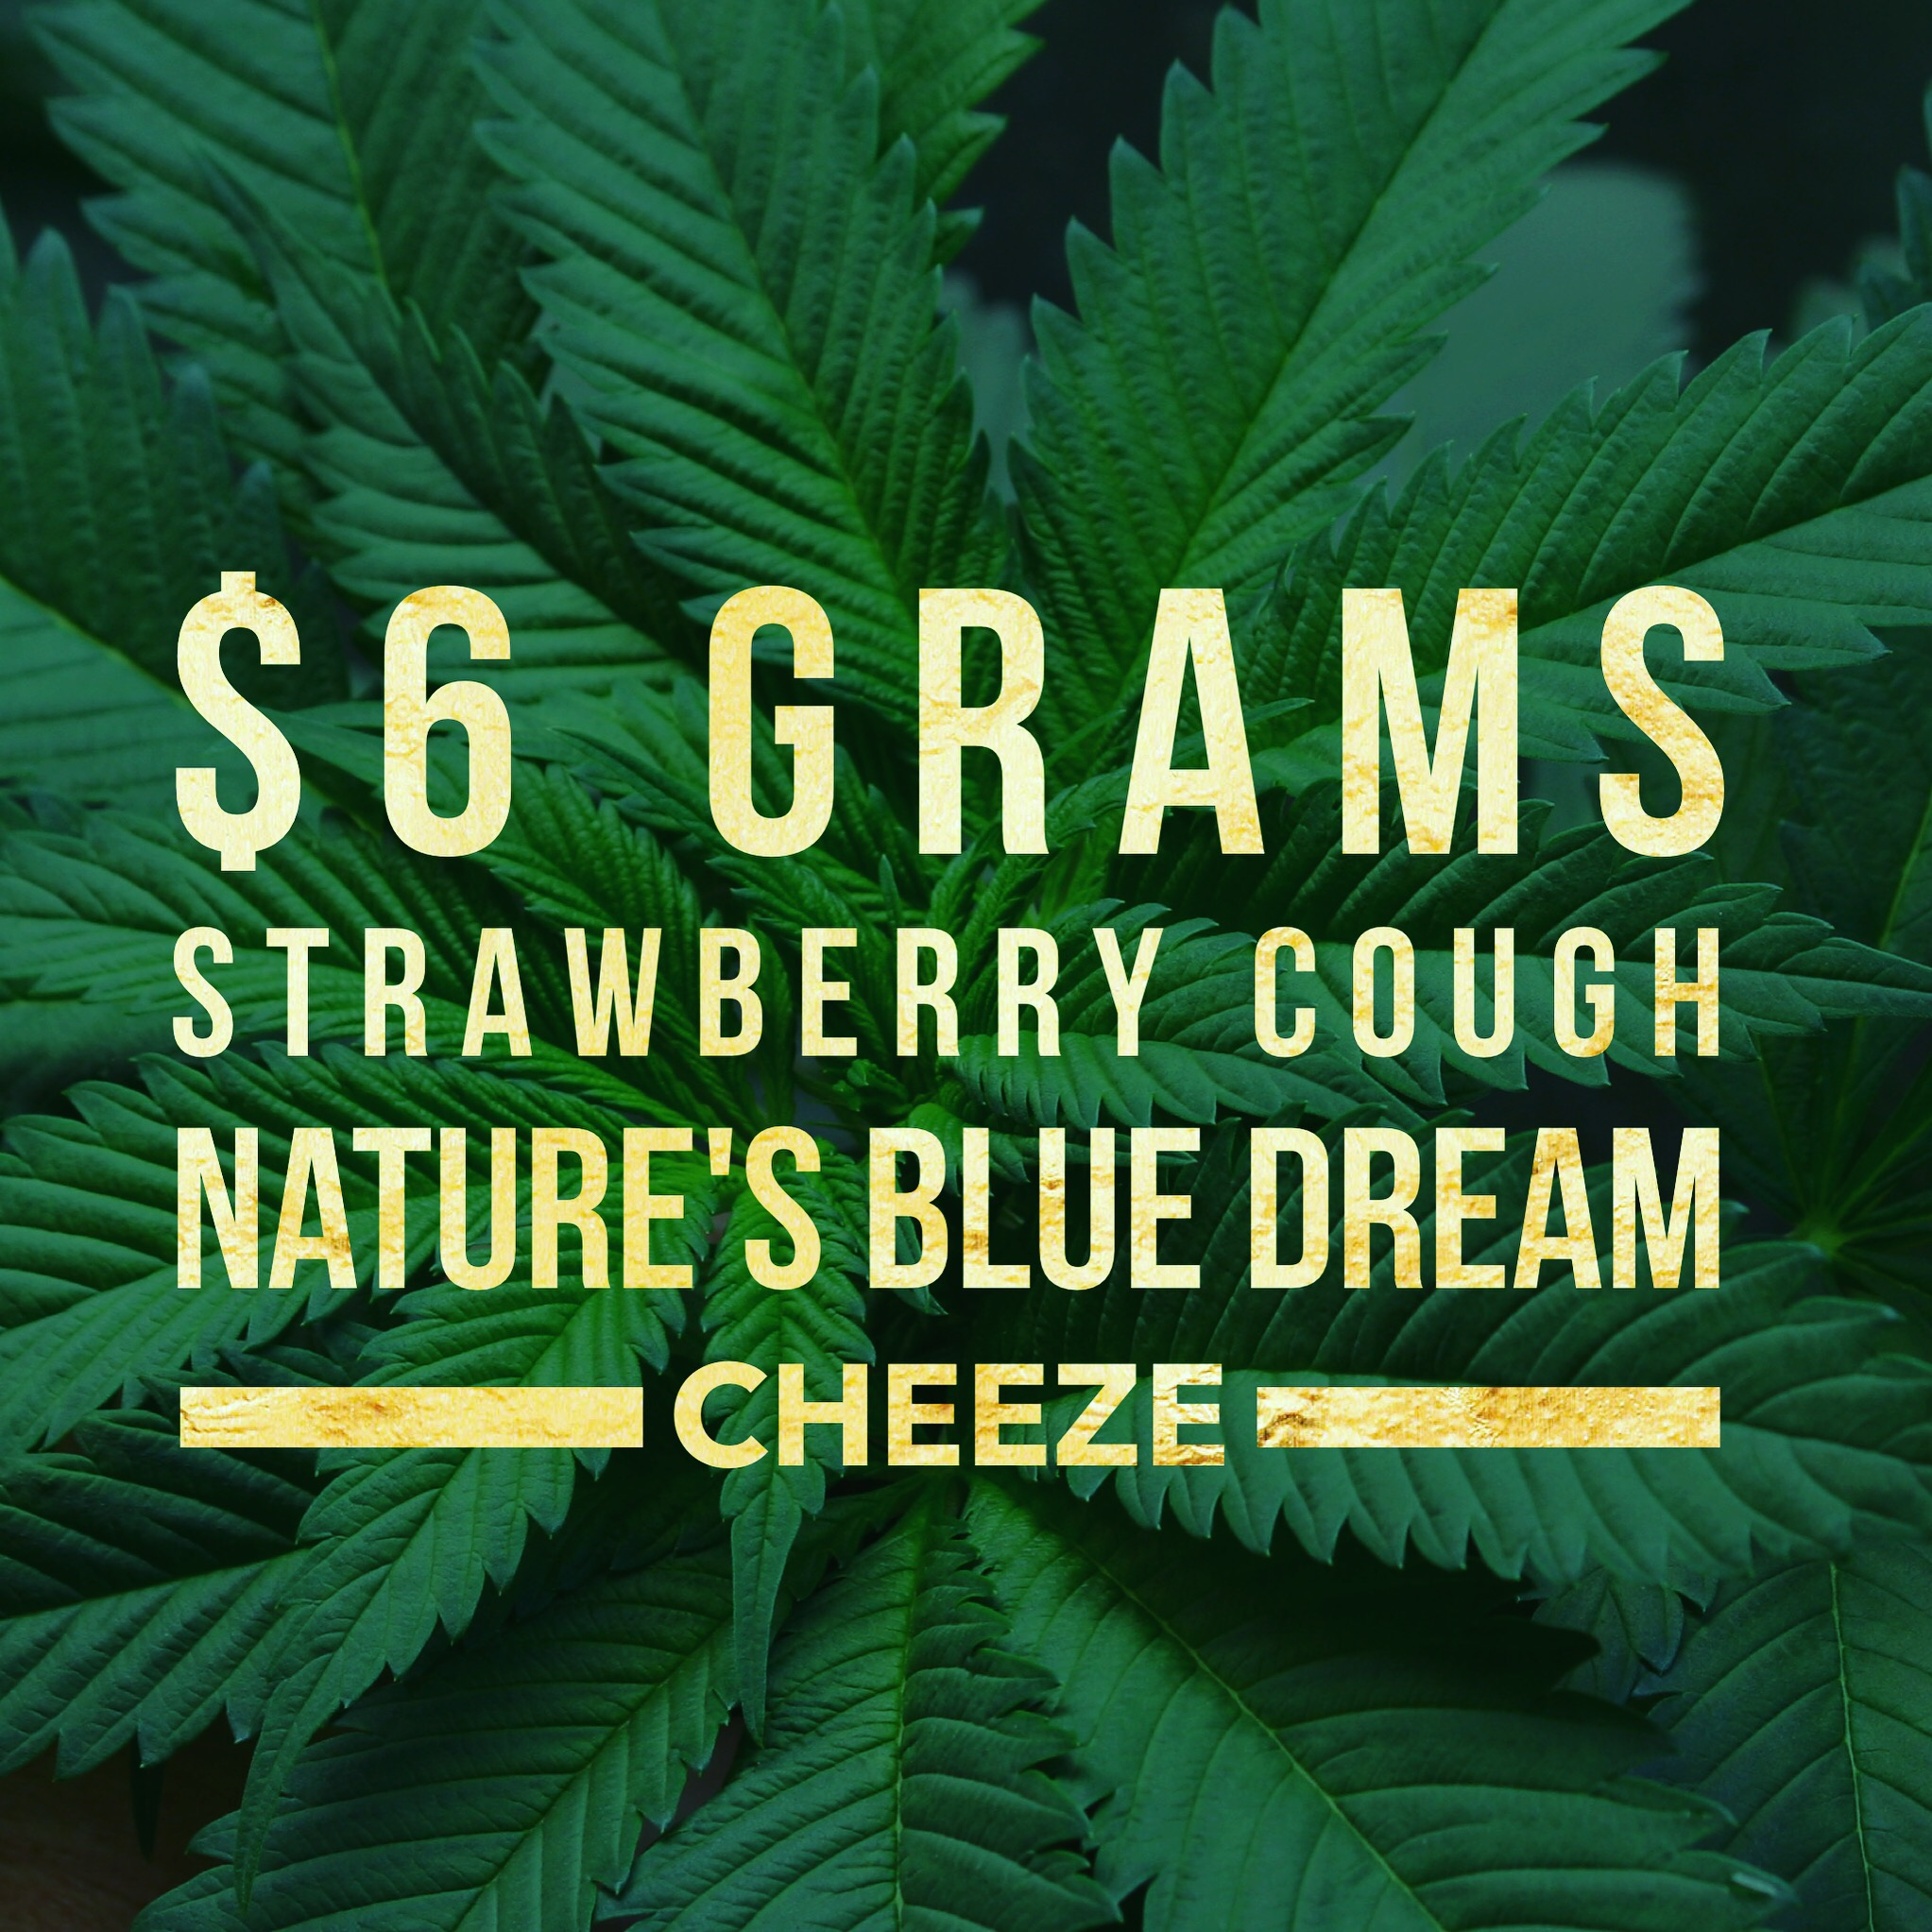 strawberry-cough-cheese-blue-dream.jpg